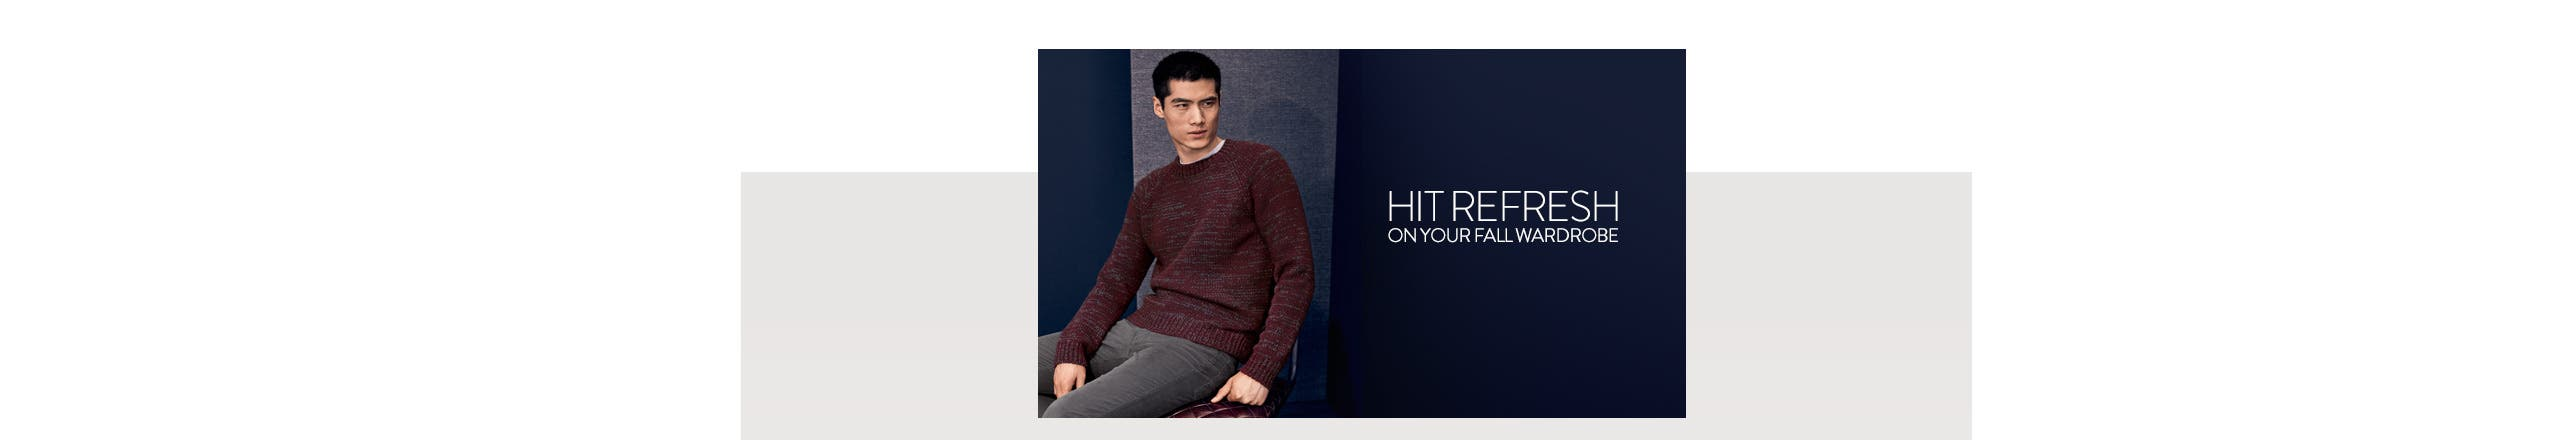 Hit refresh on your fall wardrobe.